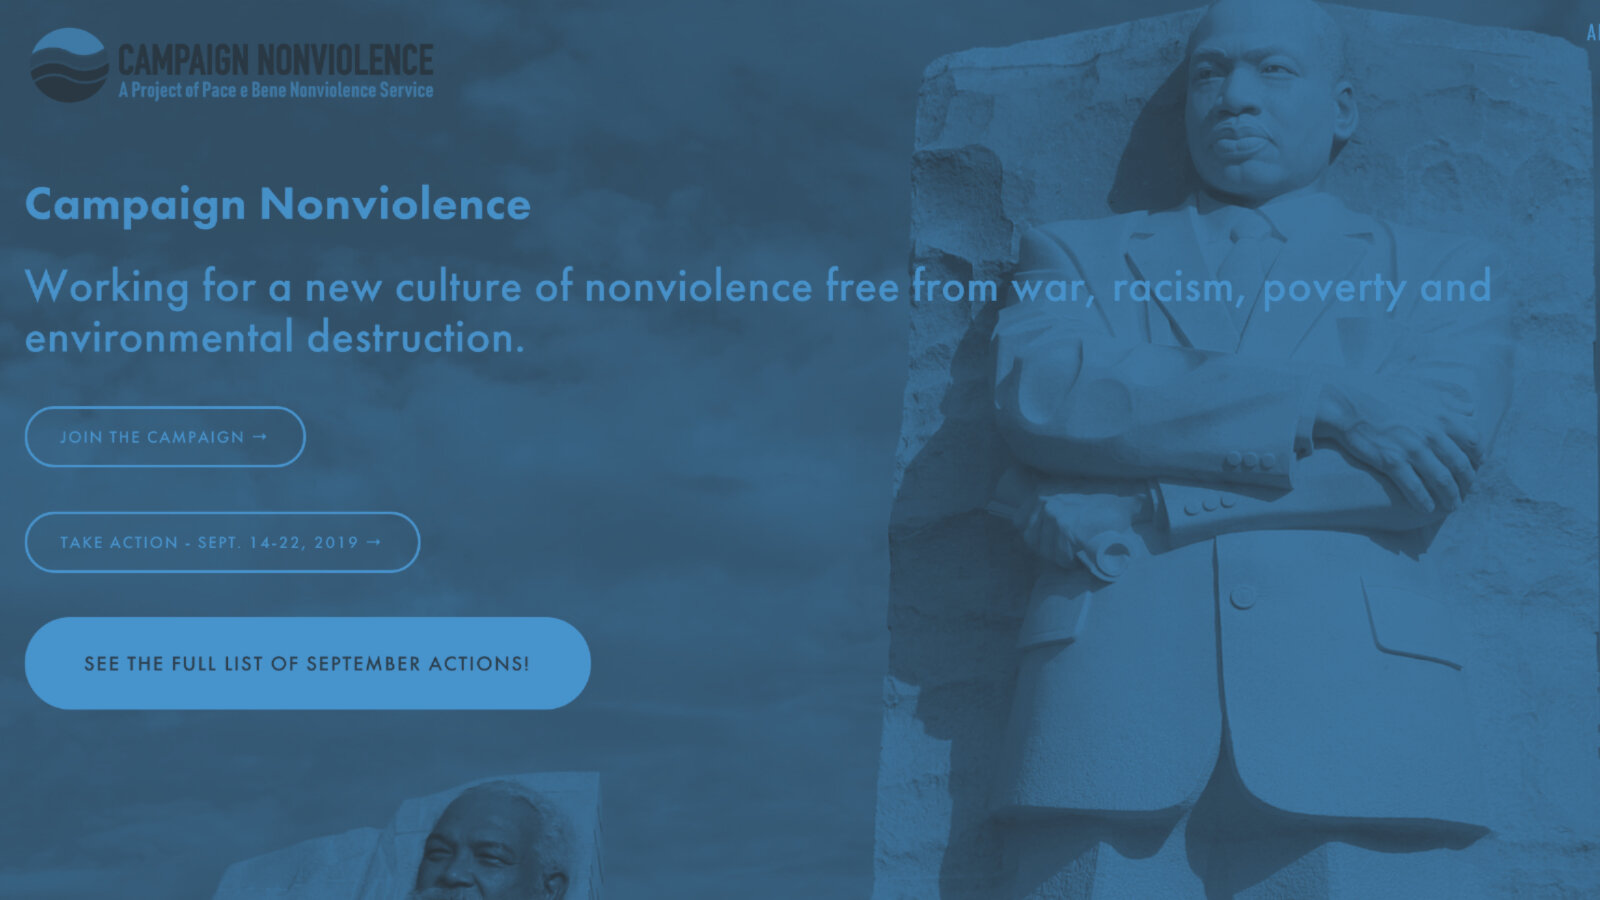 National Civil Rights Museum website -